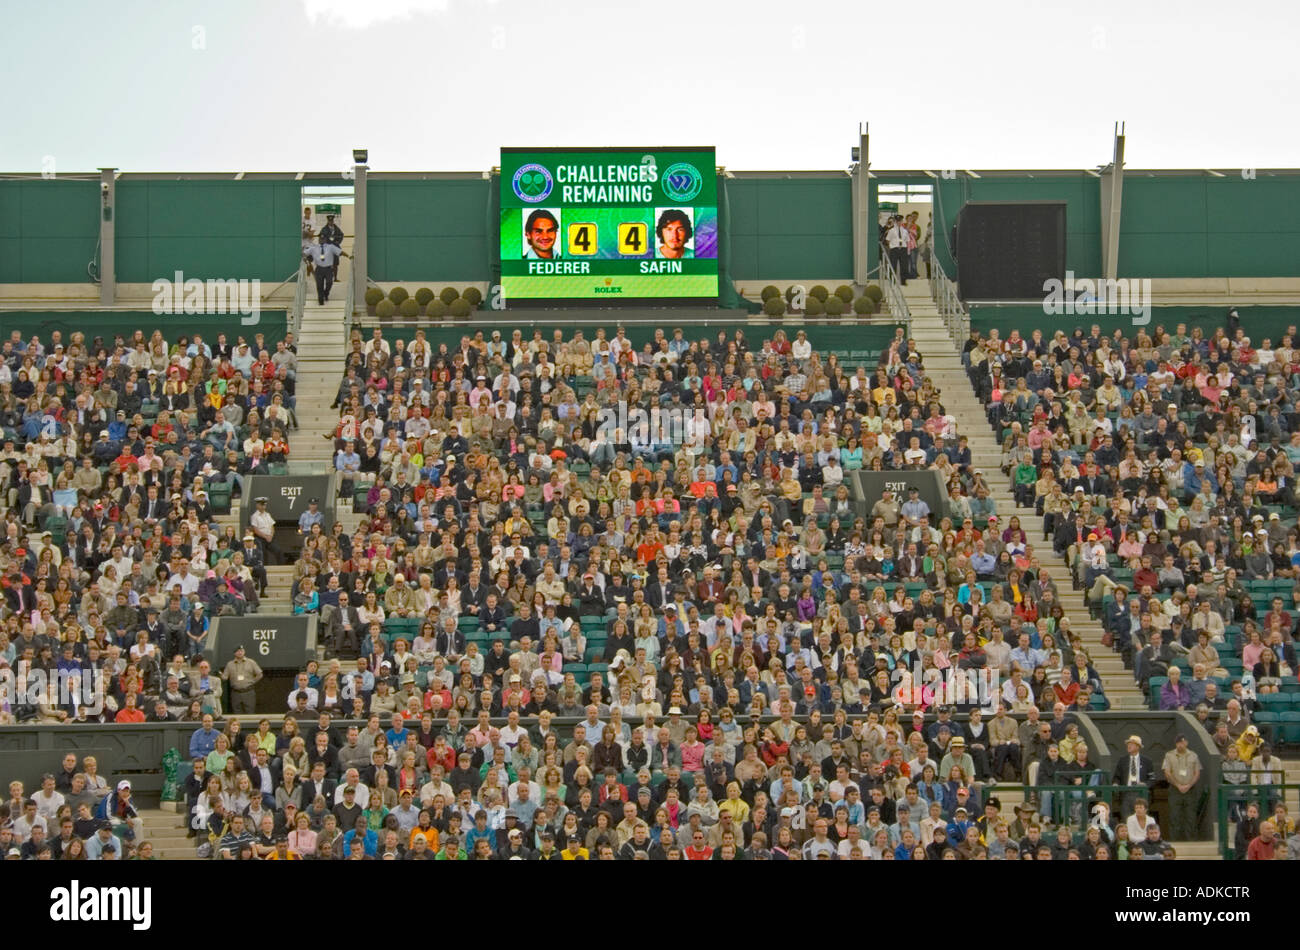 Crowd at Centre Court Wimbledon Lawn Tennis Club, London, UK - Stock Image